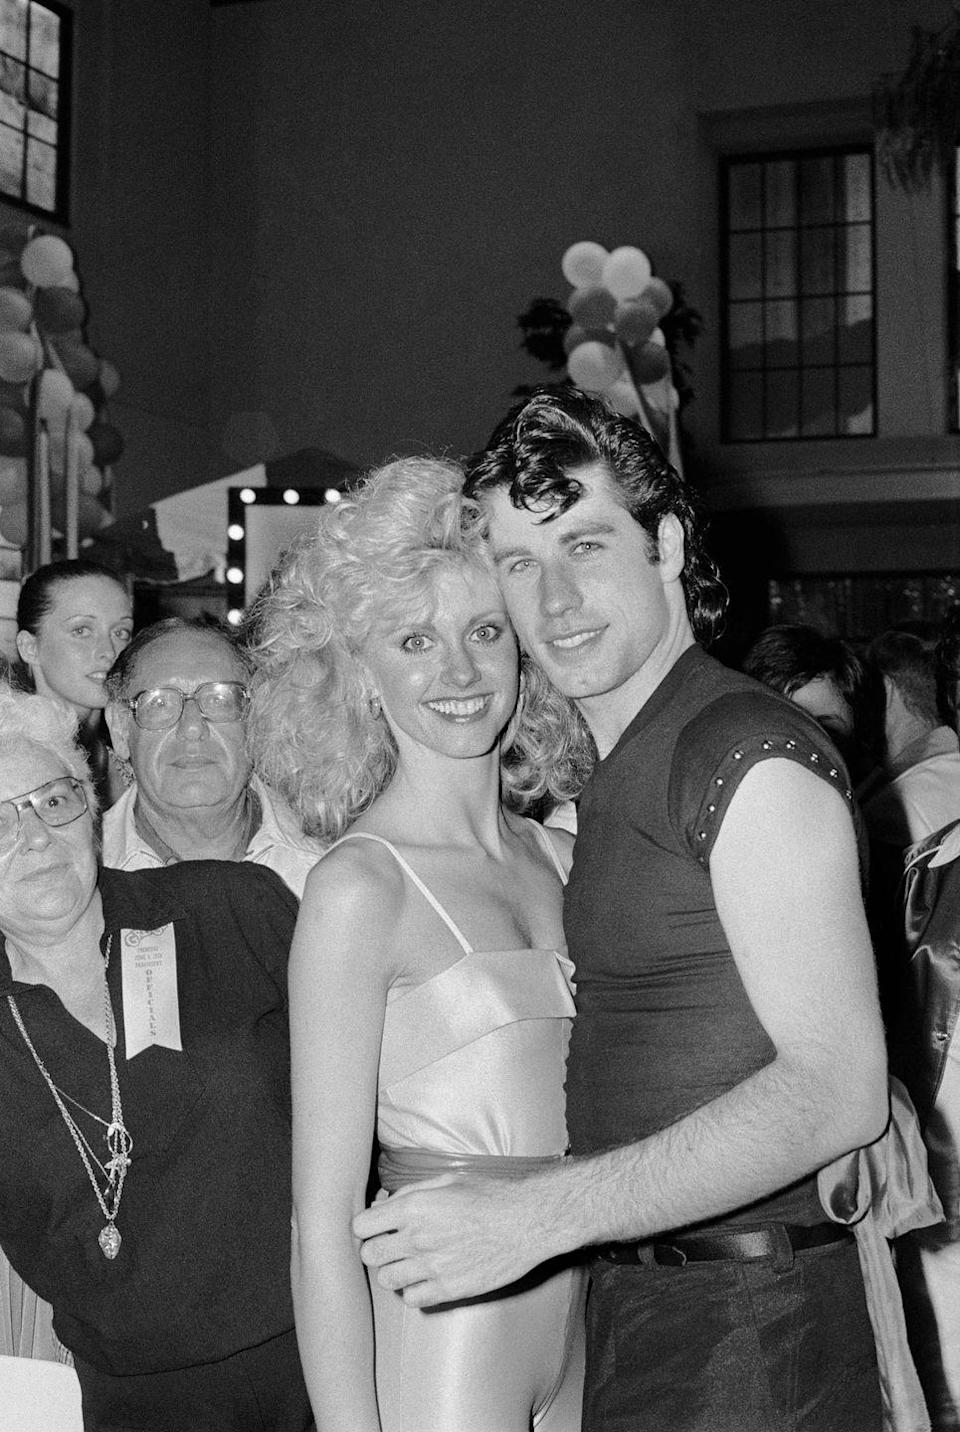 <p>John Travolta and Olivia Newton John attend a party following the gala premiere of their new movie, <em>Grease</em> in 1978.</p>